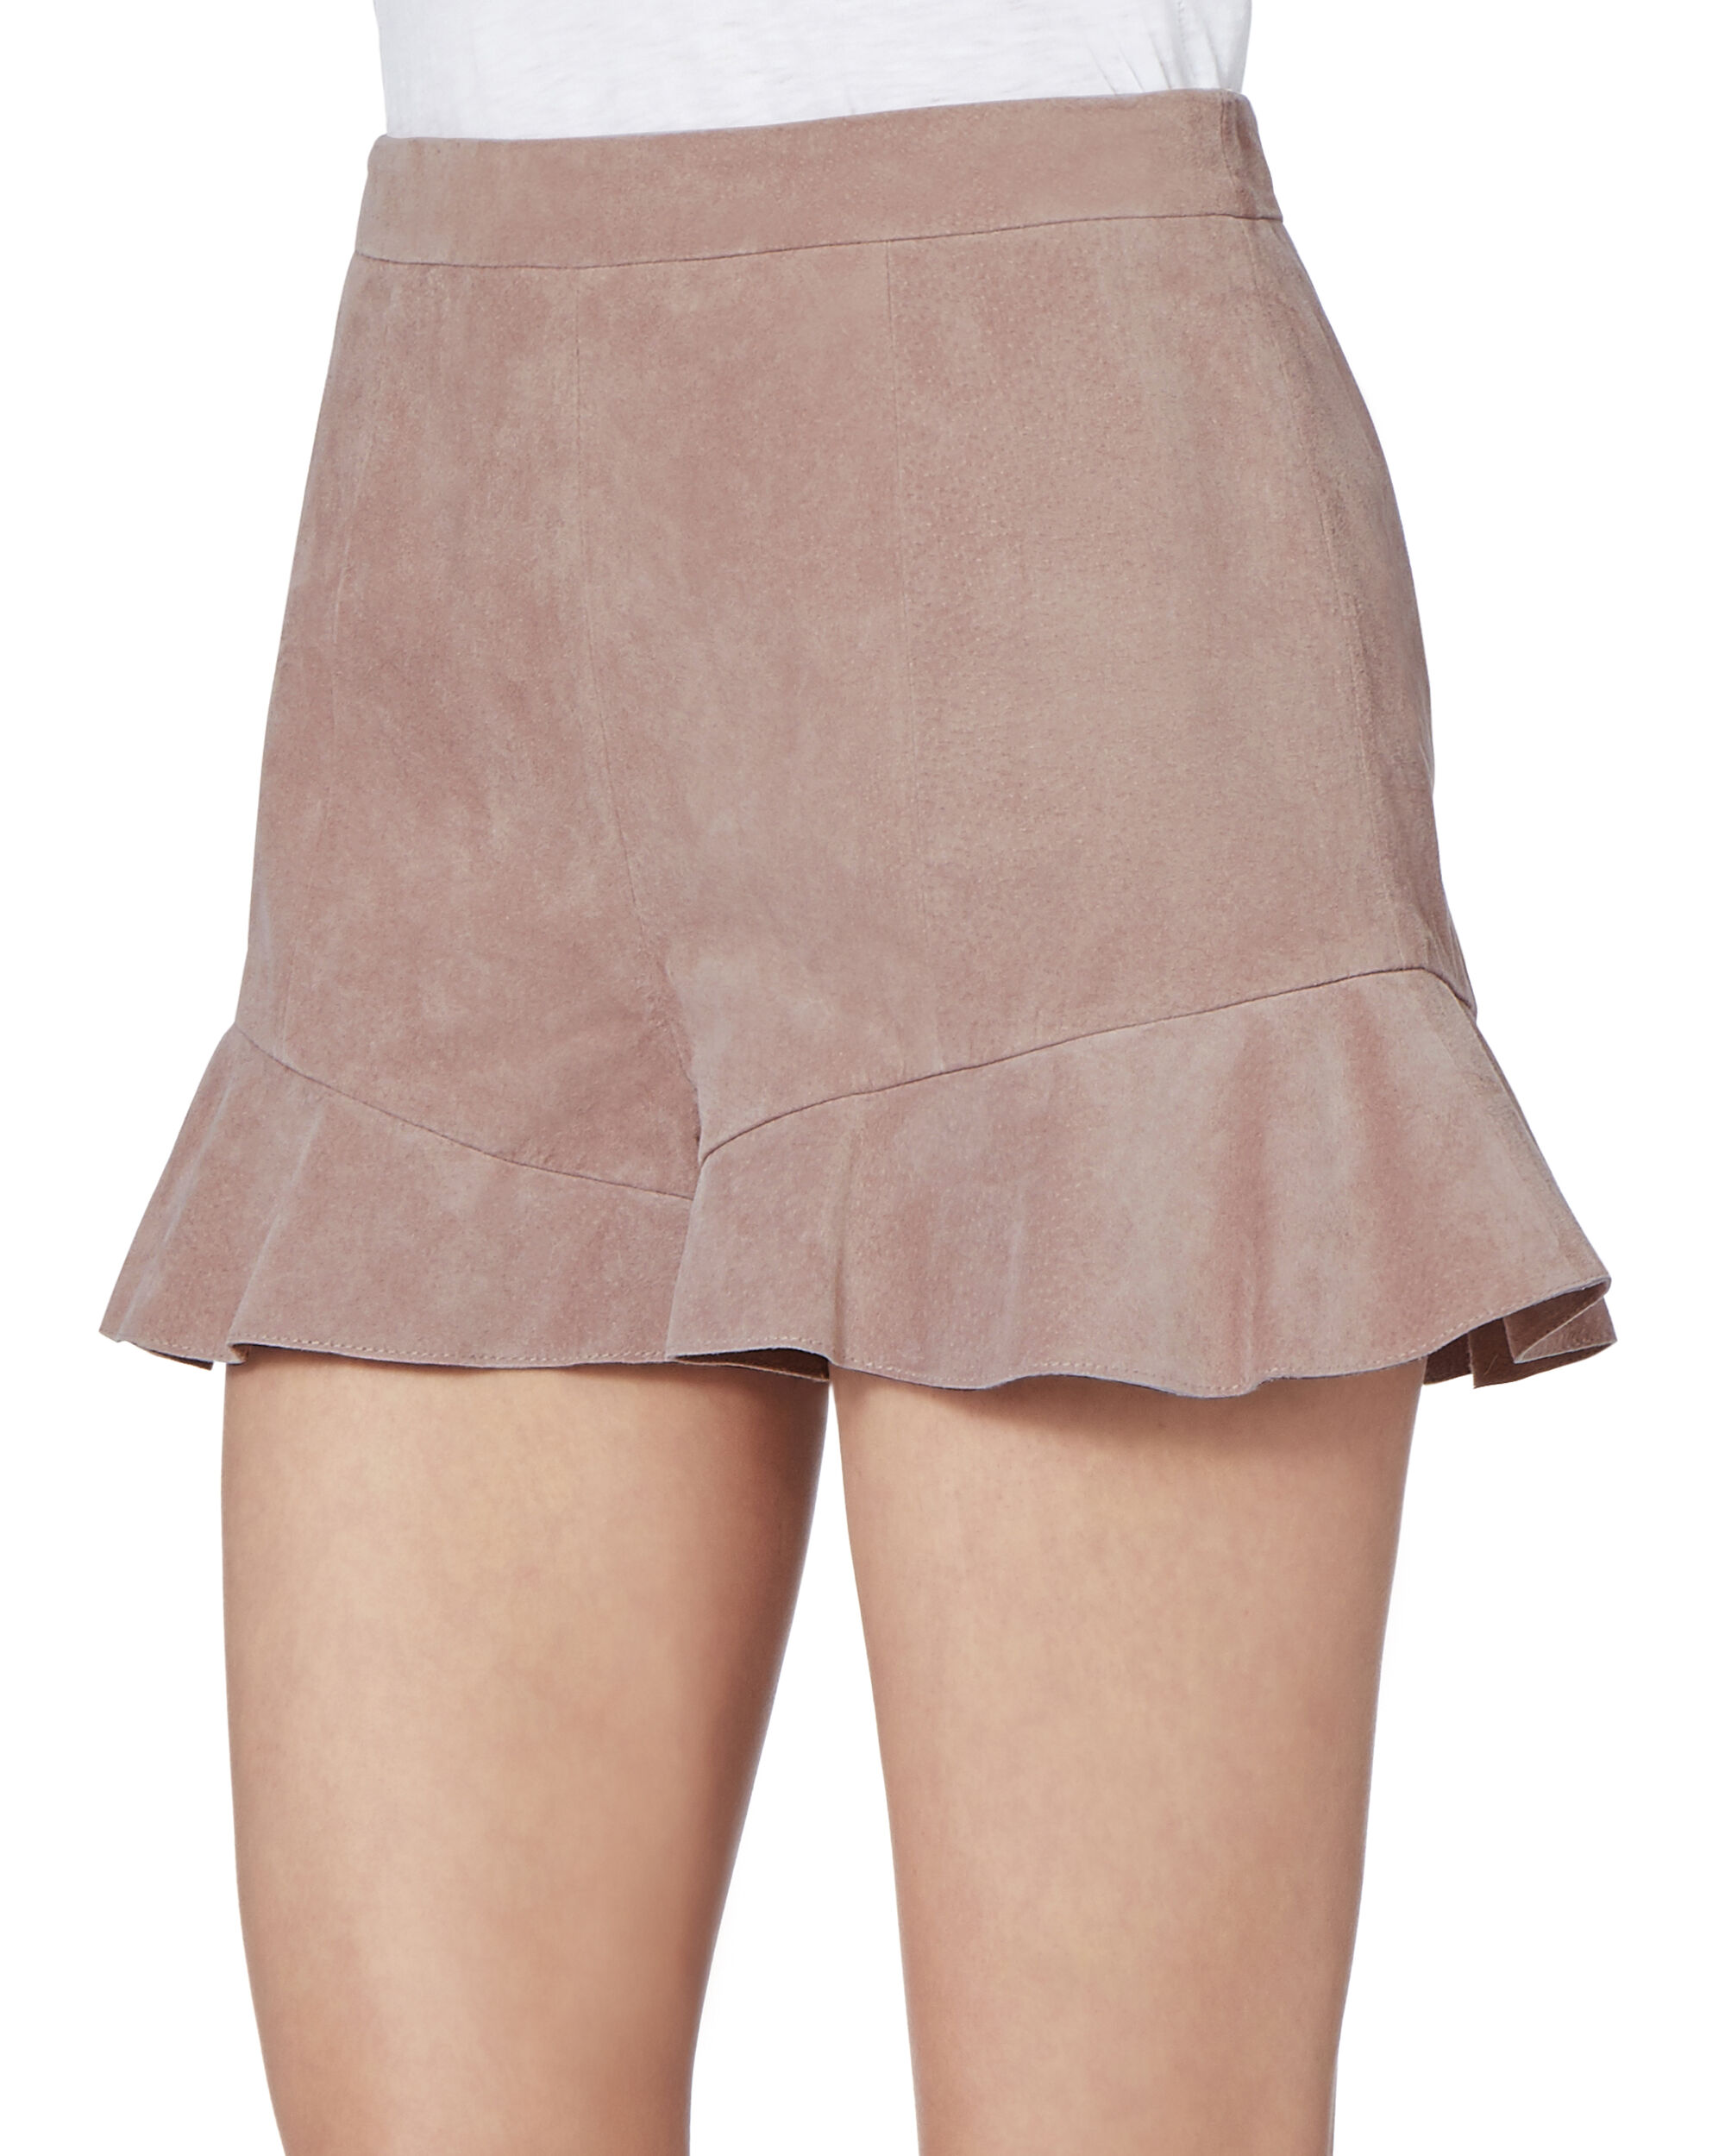 Emma Suede Ruffle Detail Shorts, PURPLE, hi-res